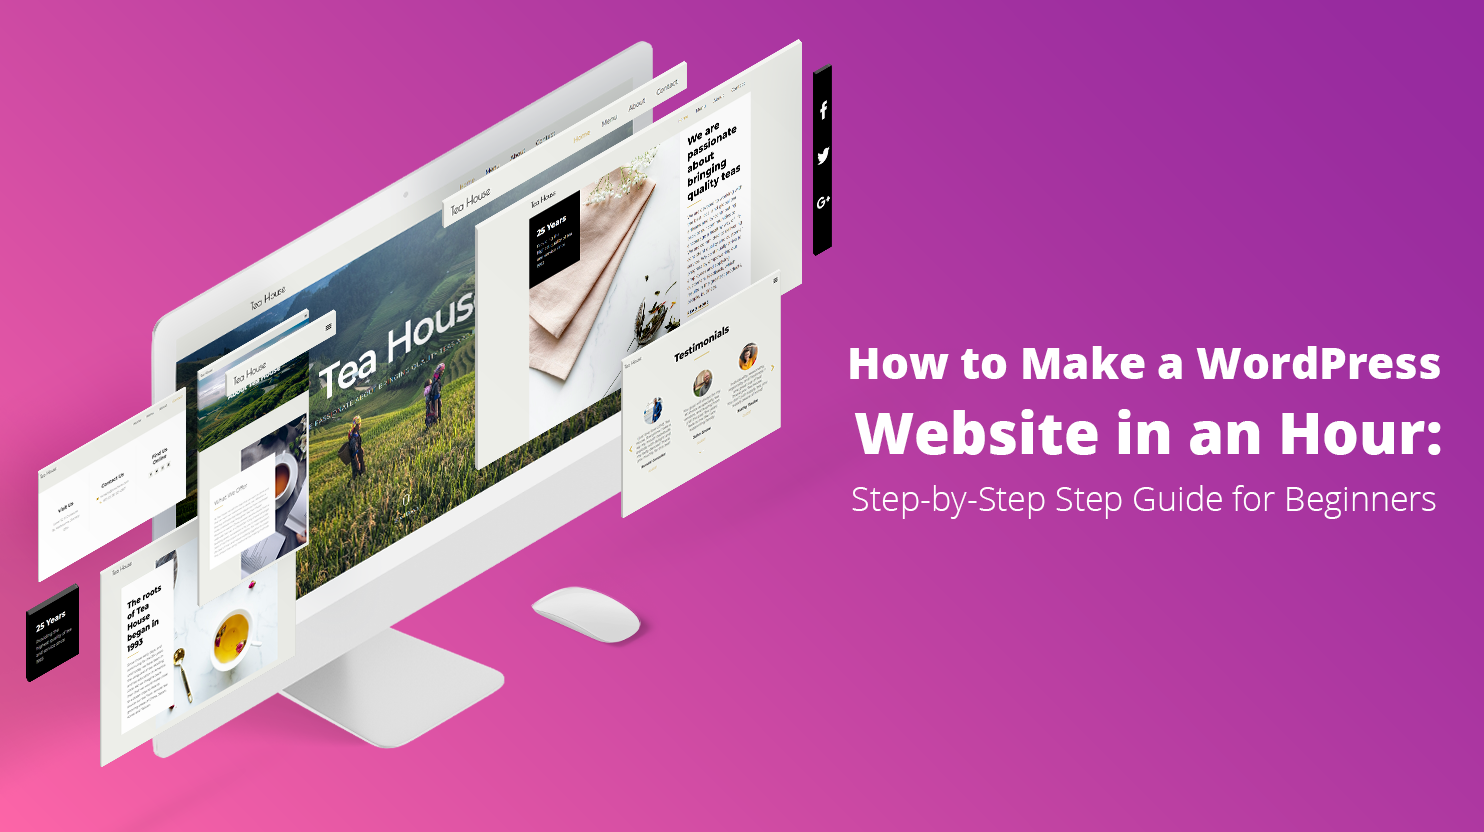 Creating wp website guide